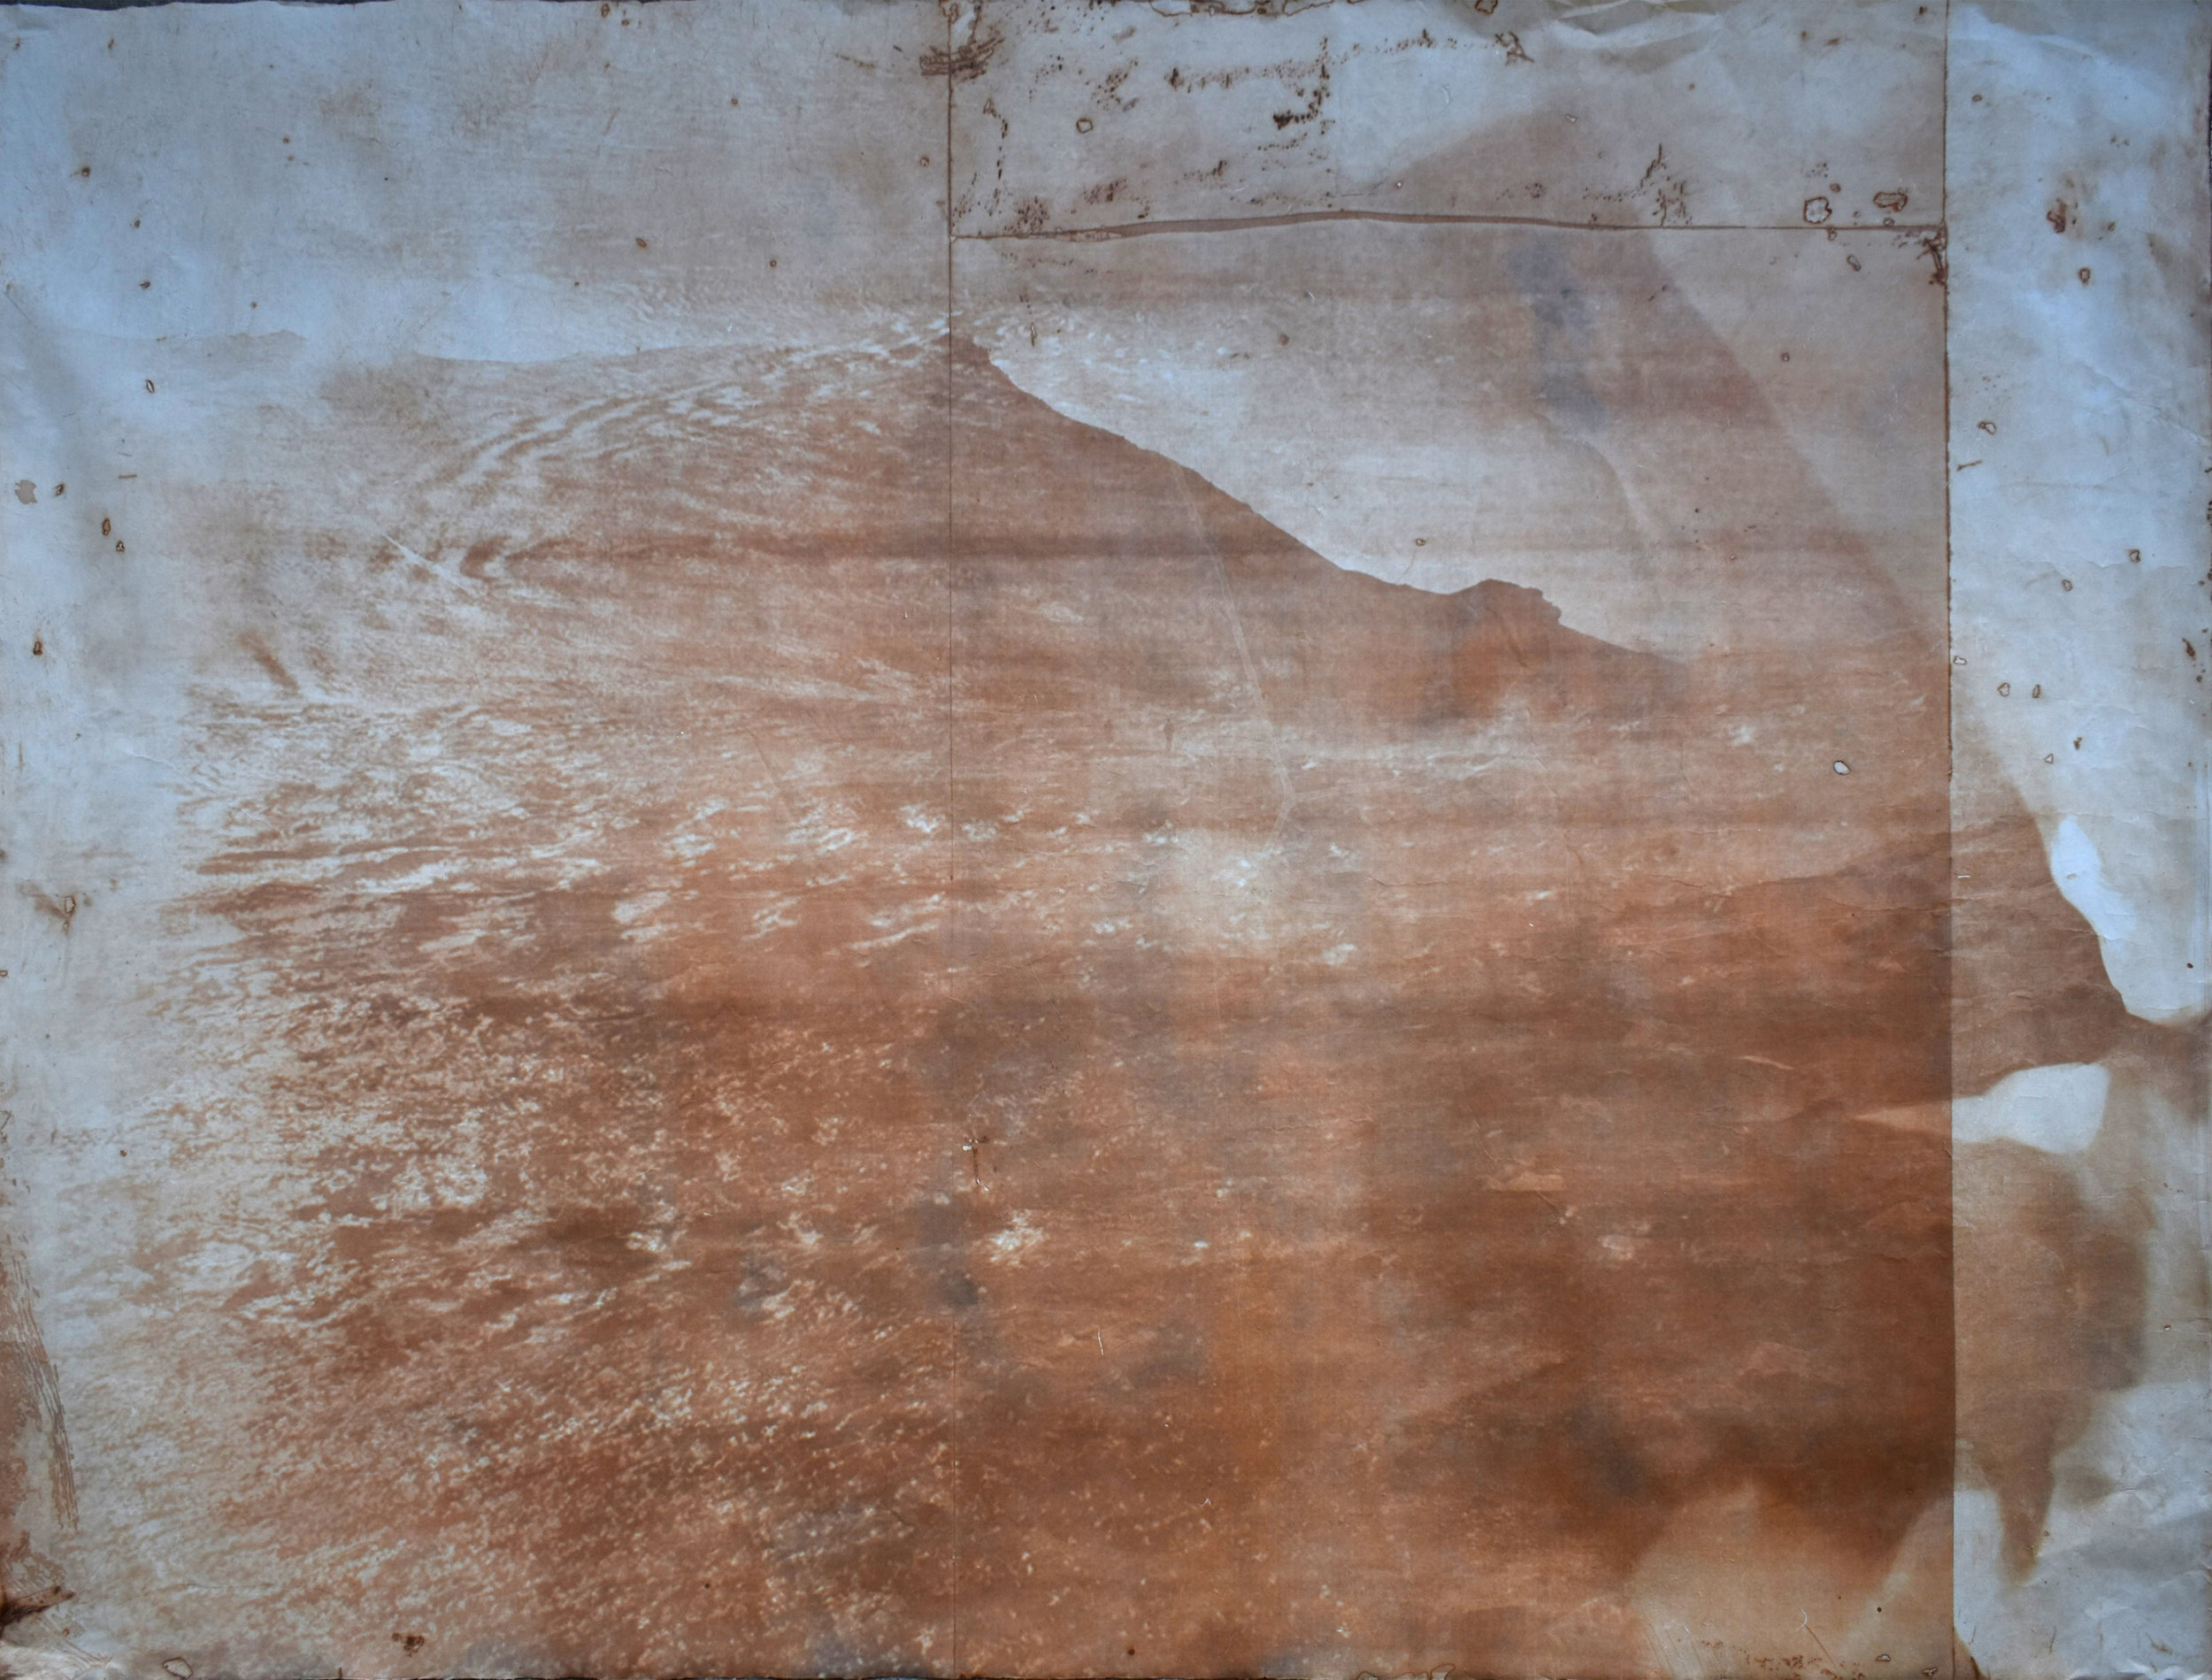 Over and Under (Whirlpool),  No. 11, 2019. Series of 9 photopolymer prints (from Prussian blue to orange oxide) printed on semi-transparent Thai paper. 137 x 109cm.. Superposition of 2 photographs taken by the artist: fumerole pits in Námafjall, Iceland and a whirlpool off the Cap Fréhel, France.